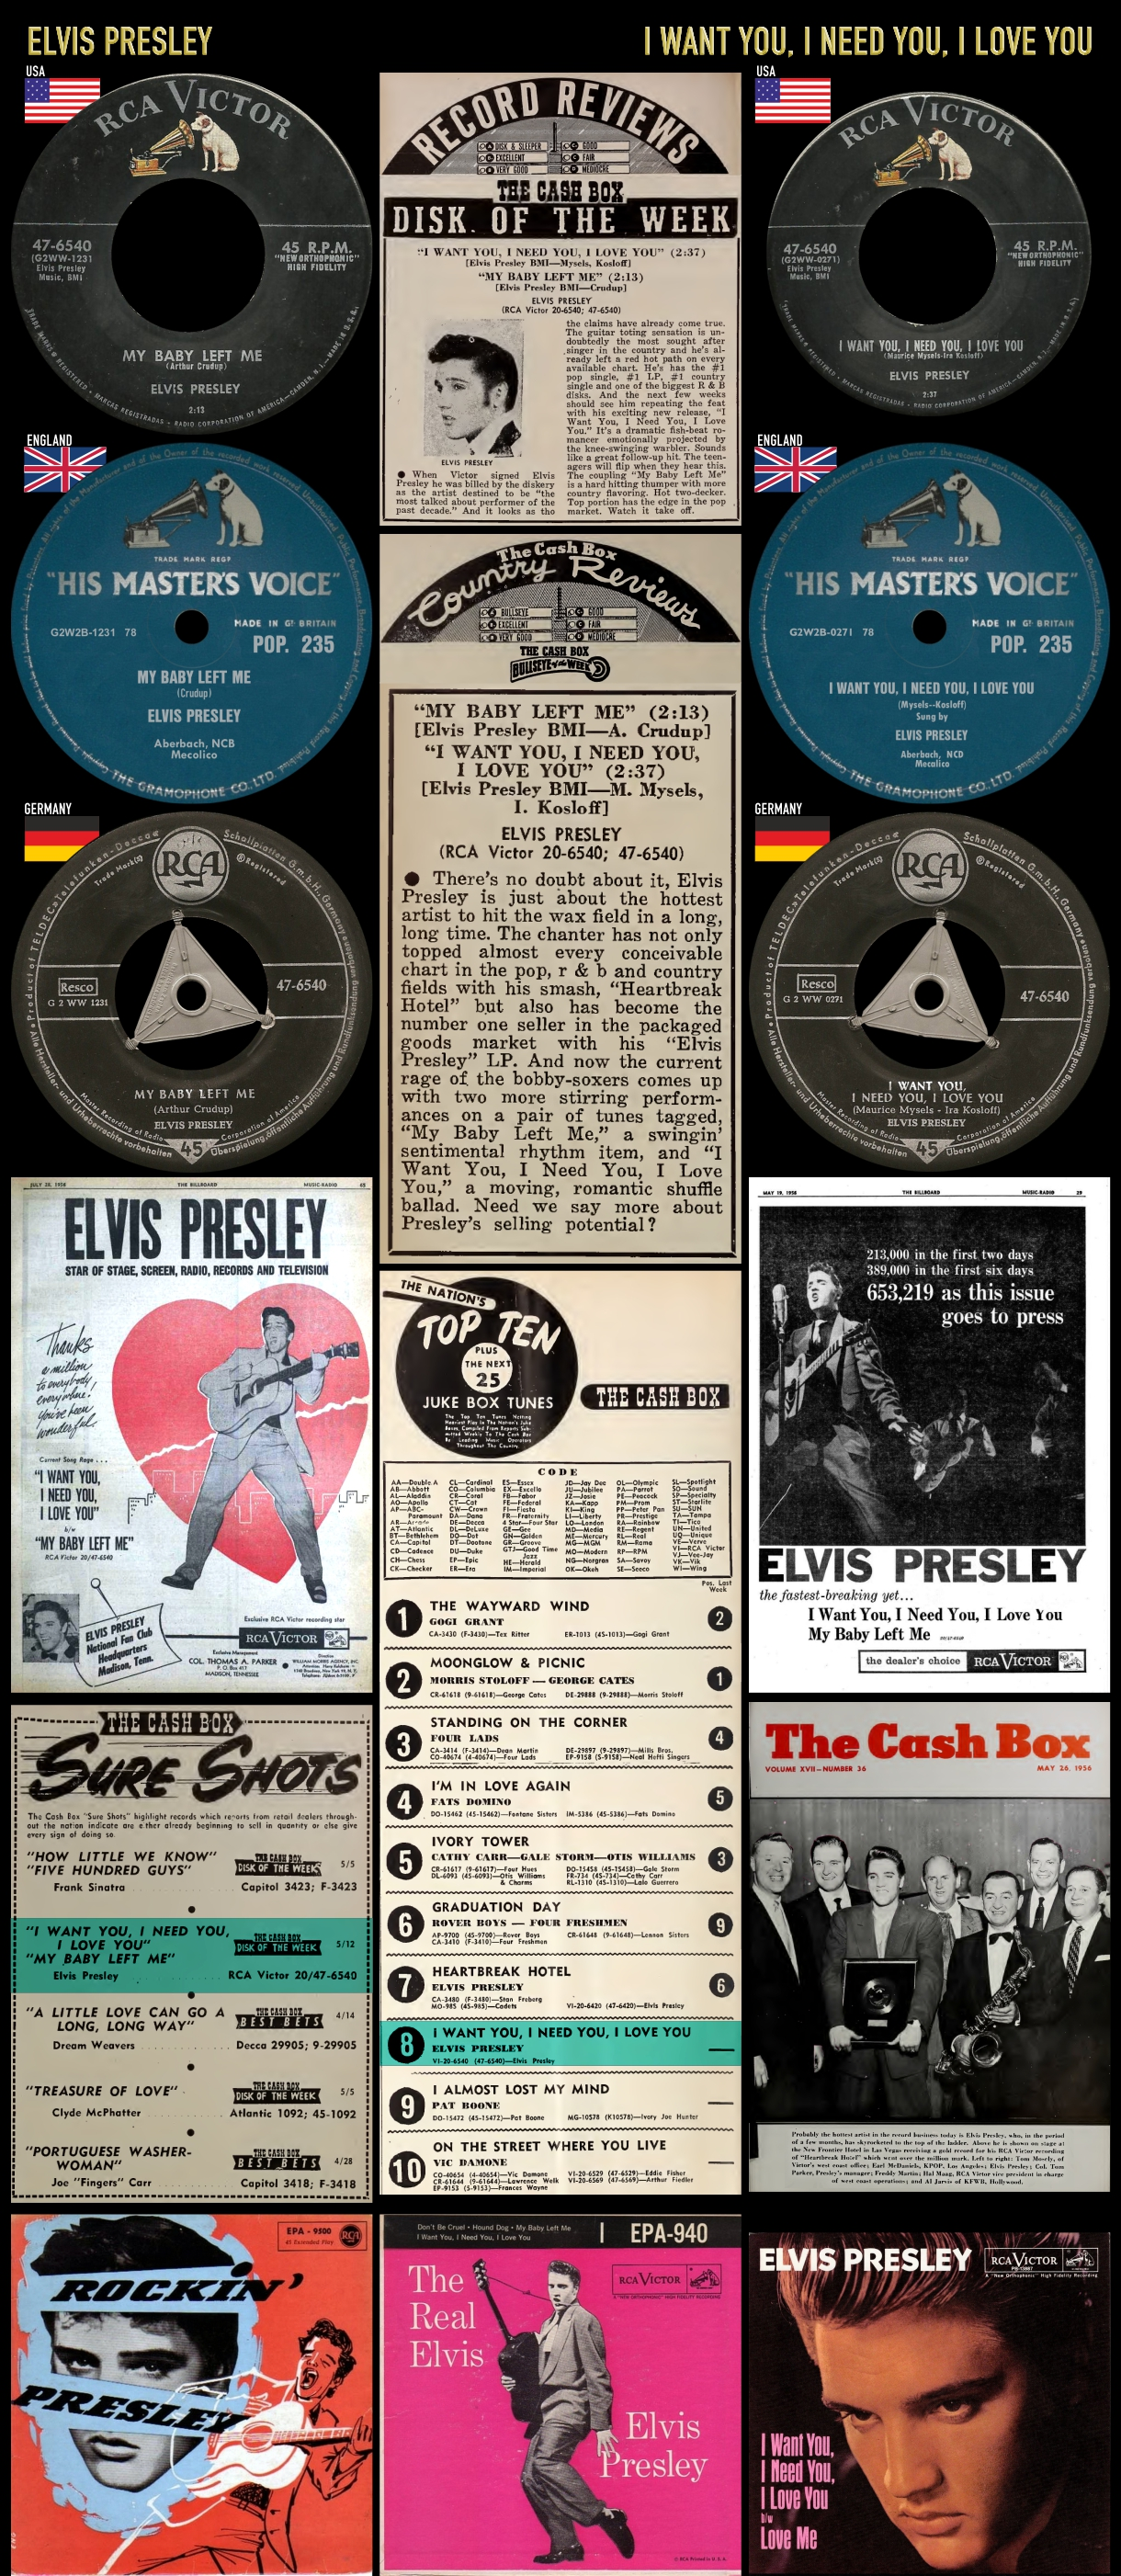 560526_Elvis-Presley_I-Want-You--I-Need-You--I-Love-You